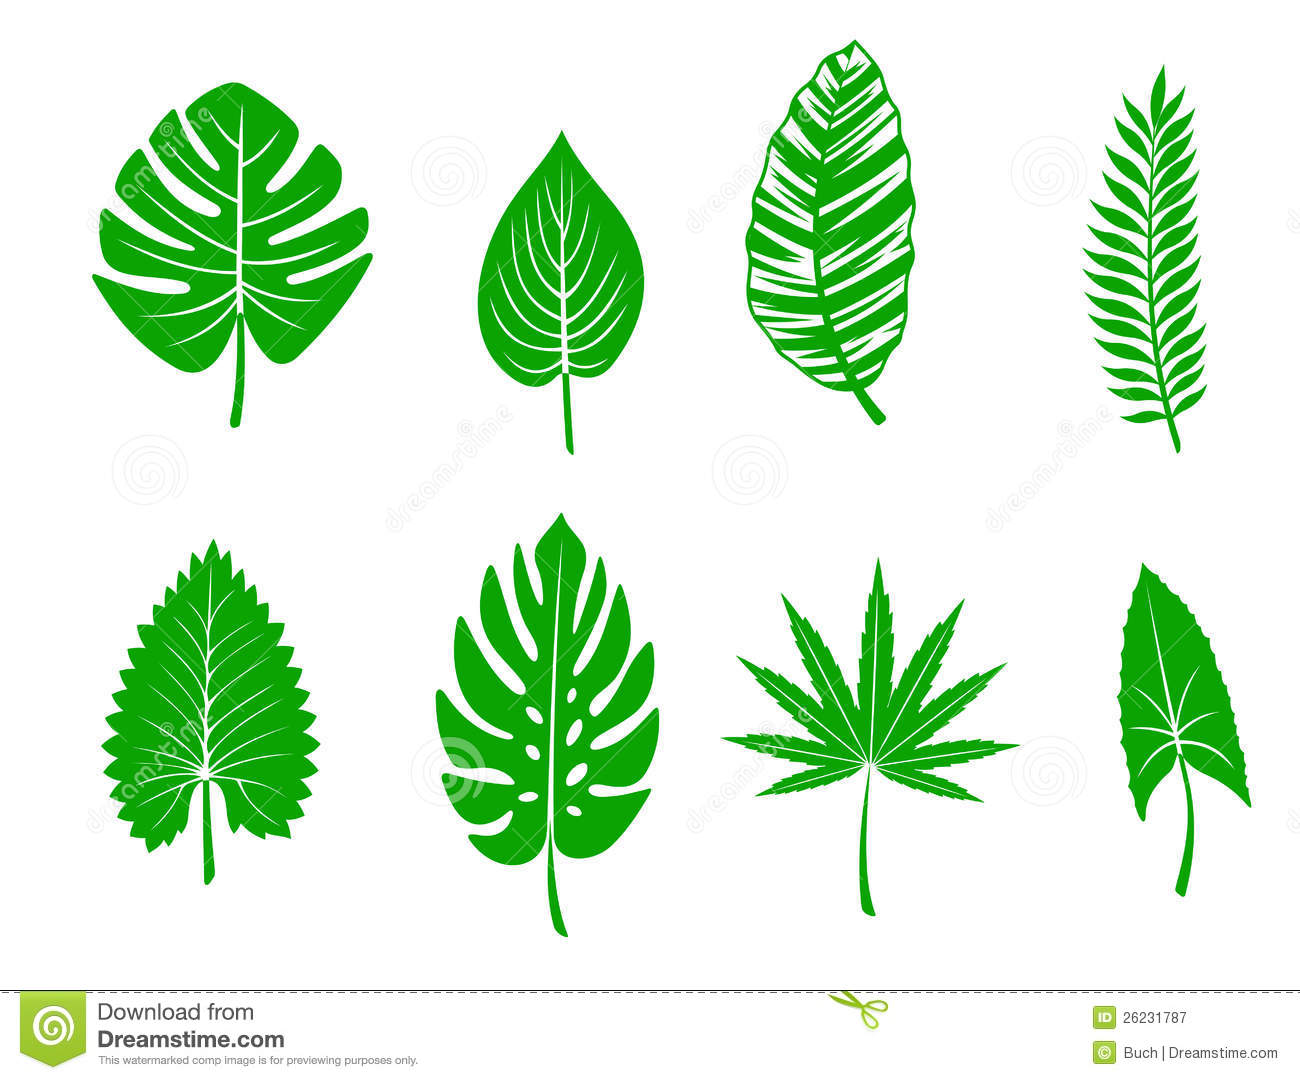 3d Flower Wallpapers Free Download Green Tropical Leaves Stock Vector Illustration Of Leaf